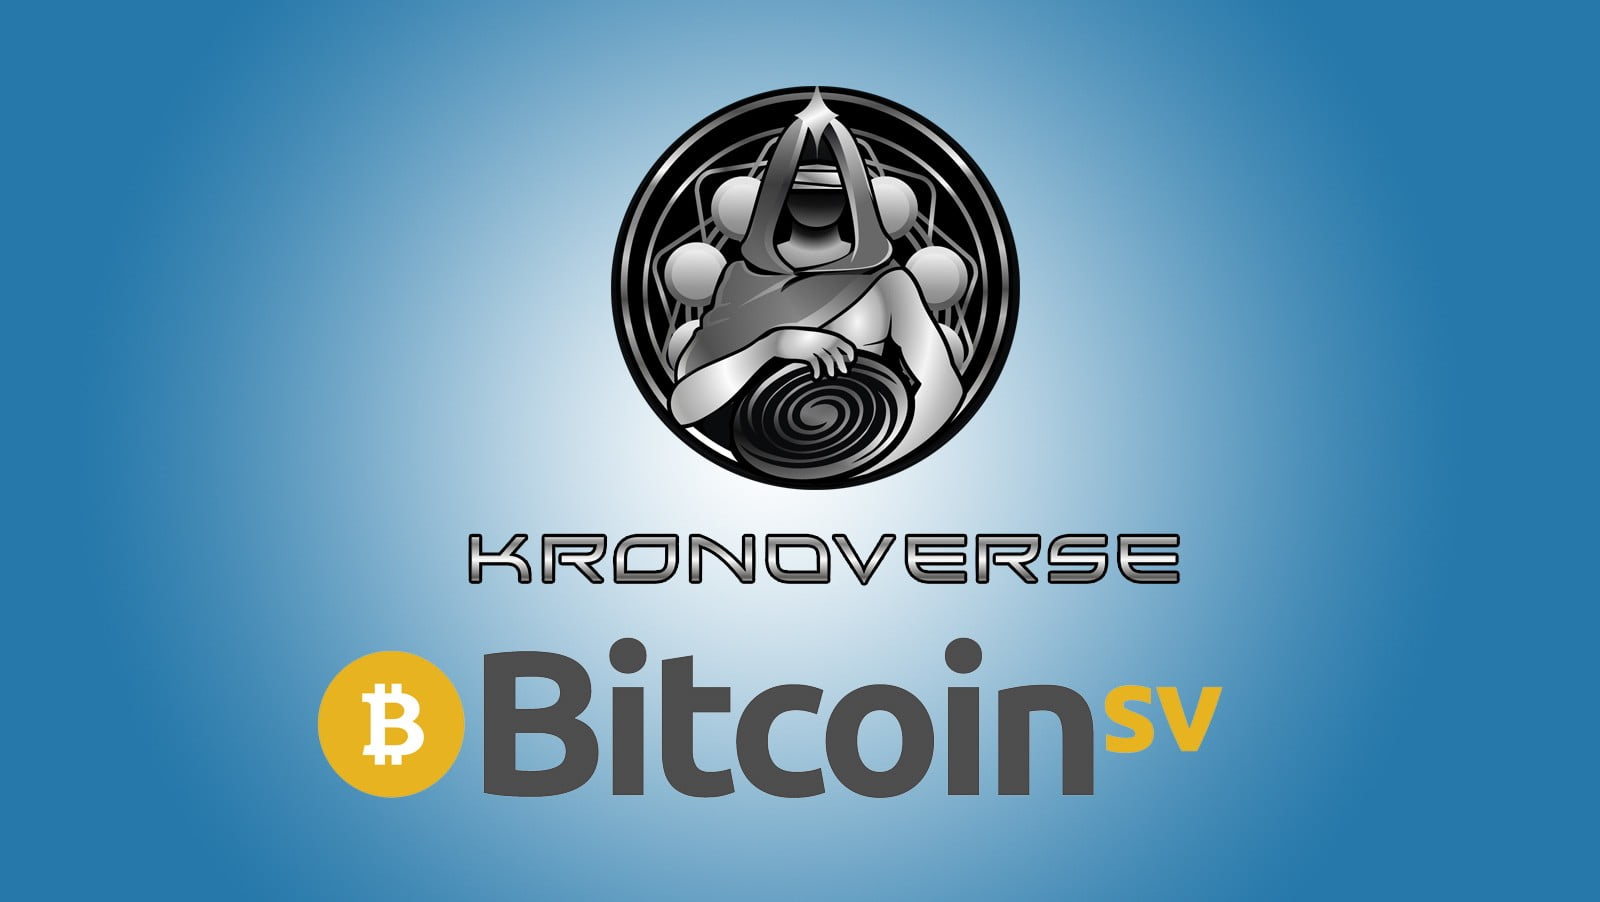 kronoverse game company secures lead investor calvin ayre as it brings cryptofights player battles to bitcoin sv bsv blo - Kronoverse Teams Up With ESL: Revolutionizing esports Industry And Bringing New Frontiers With Endless Possibilities